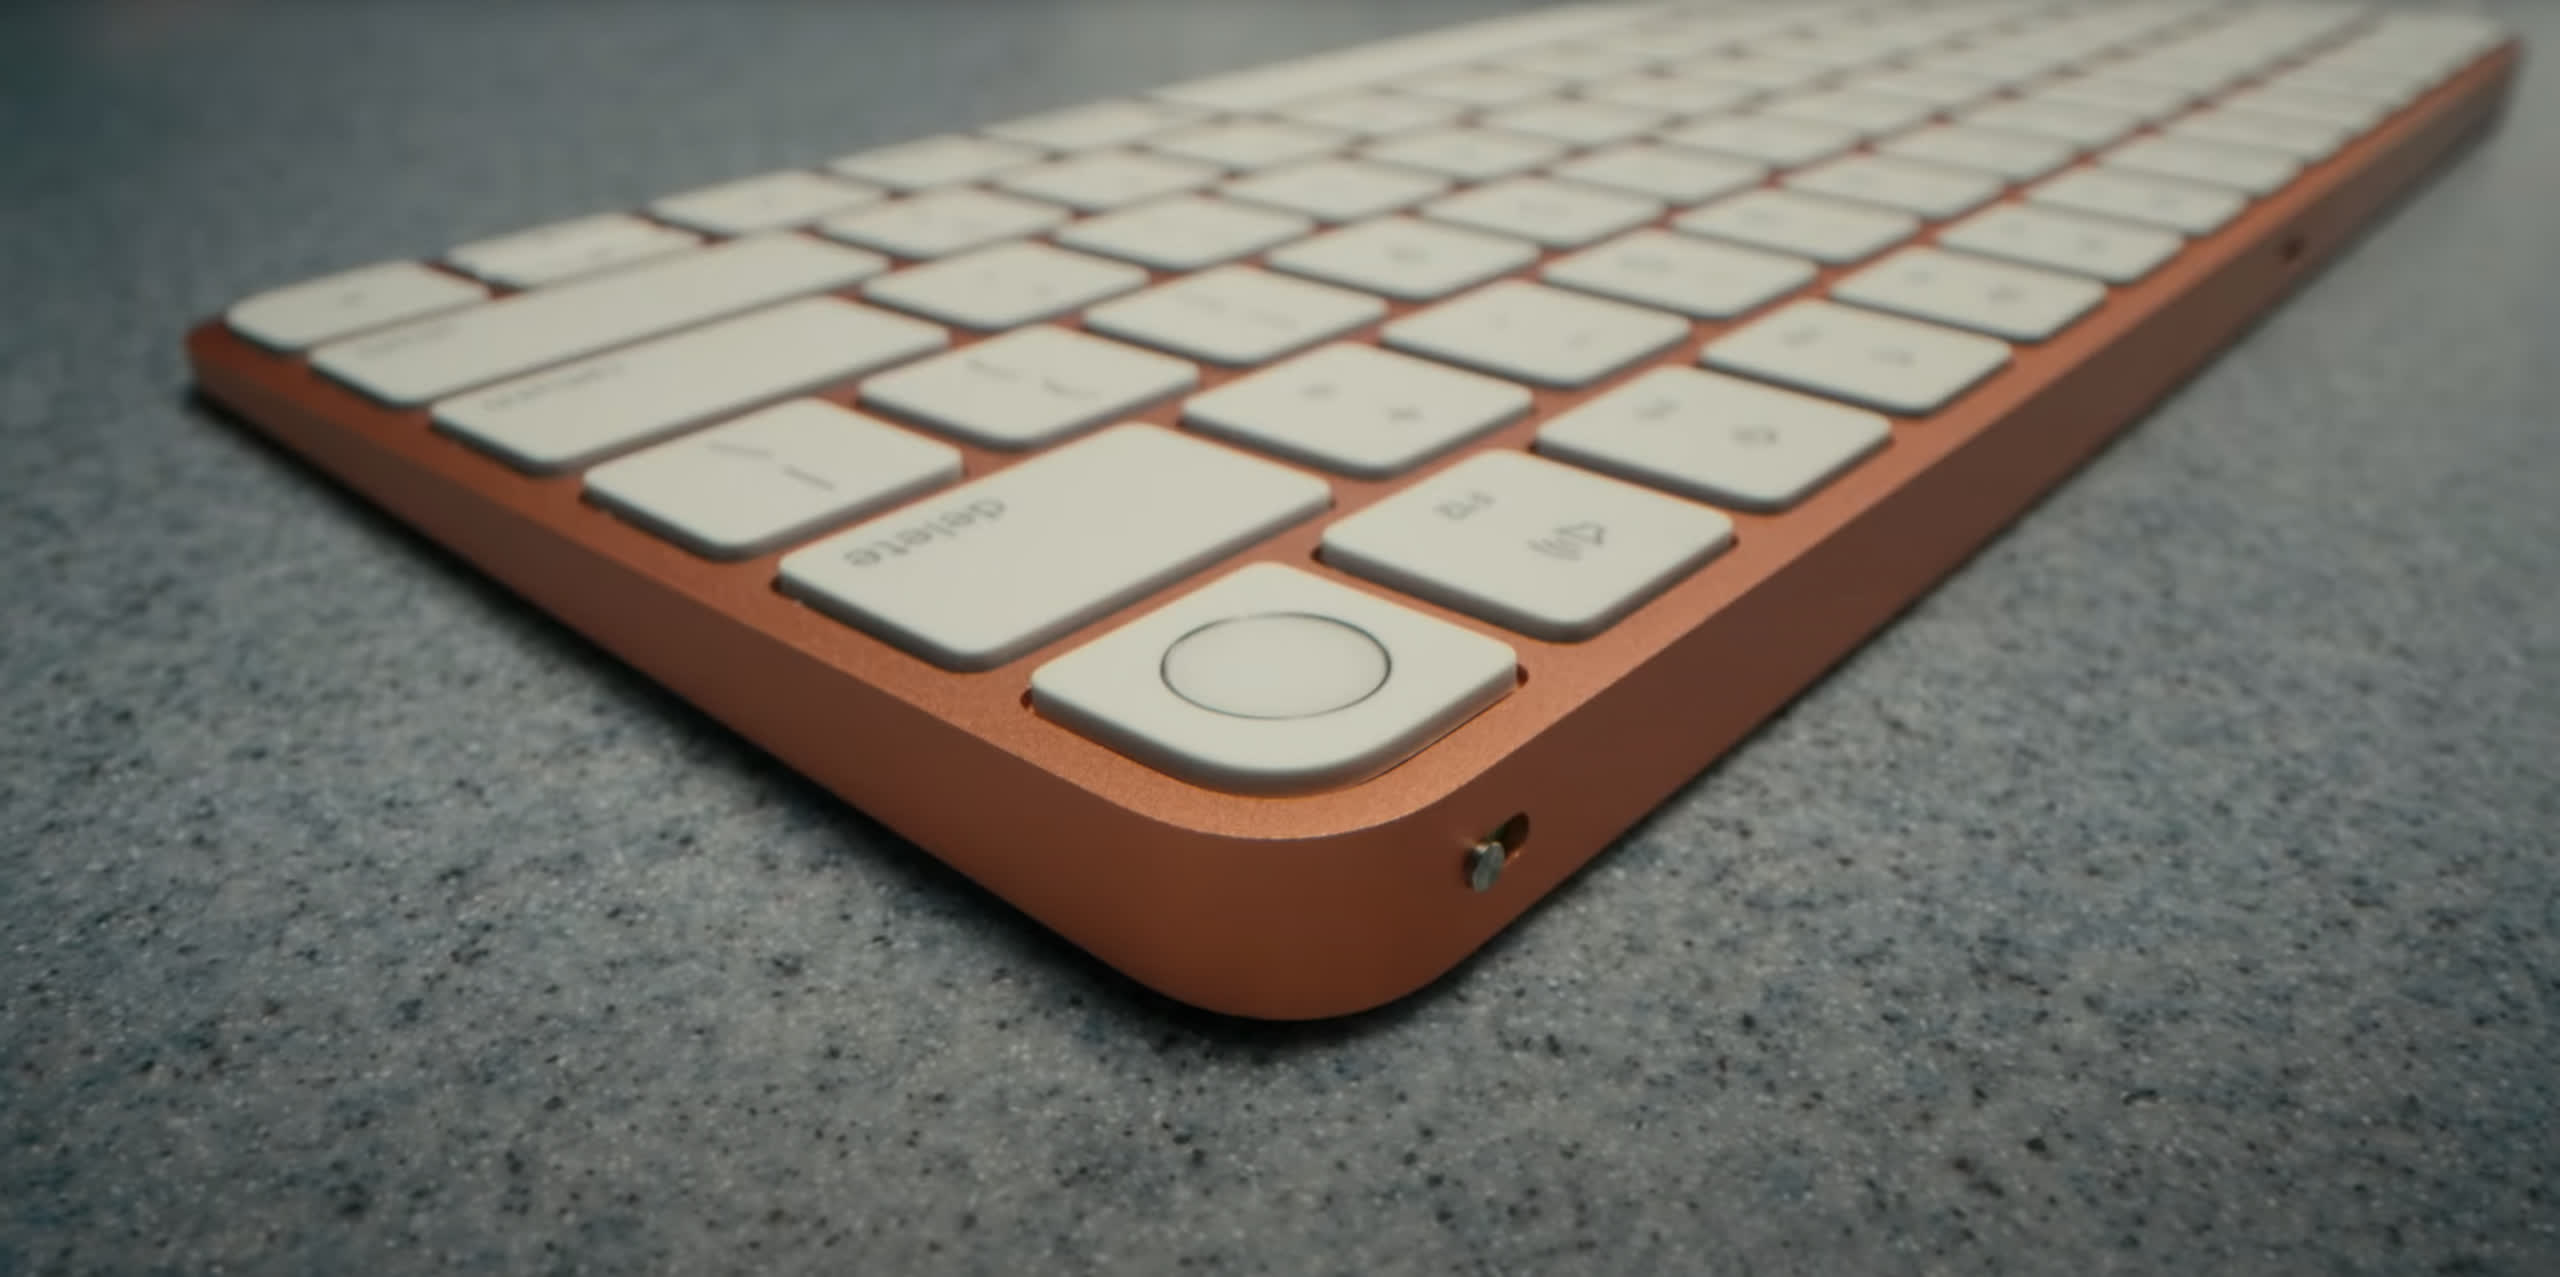 Apple's new Magic Keyboard with Touch ID is now available for all (who own an M1 Mac)